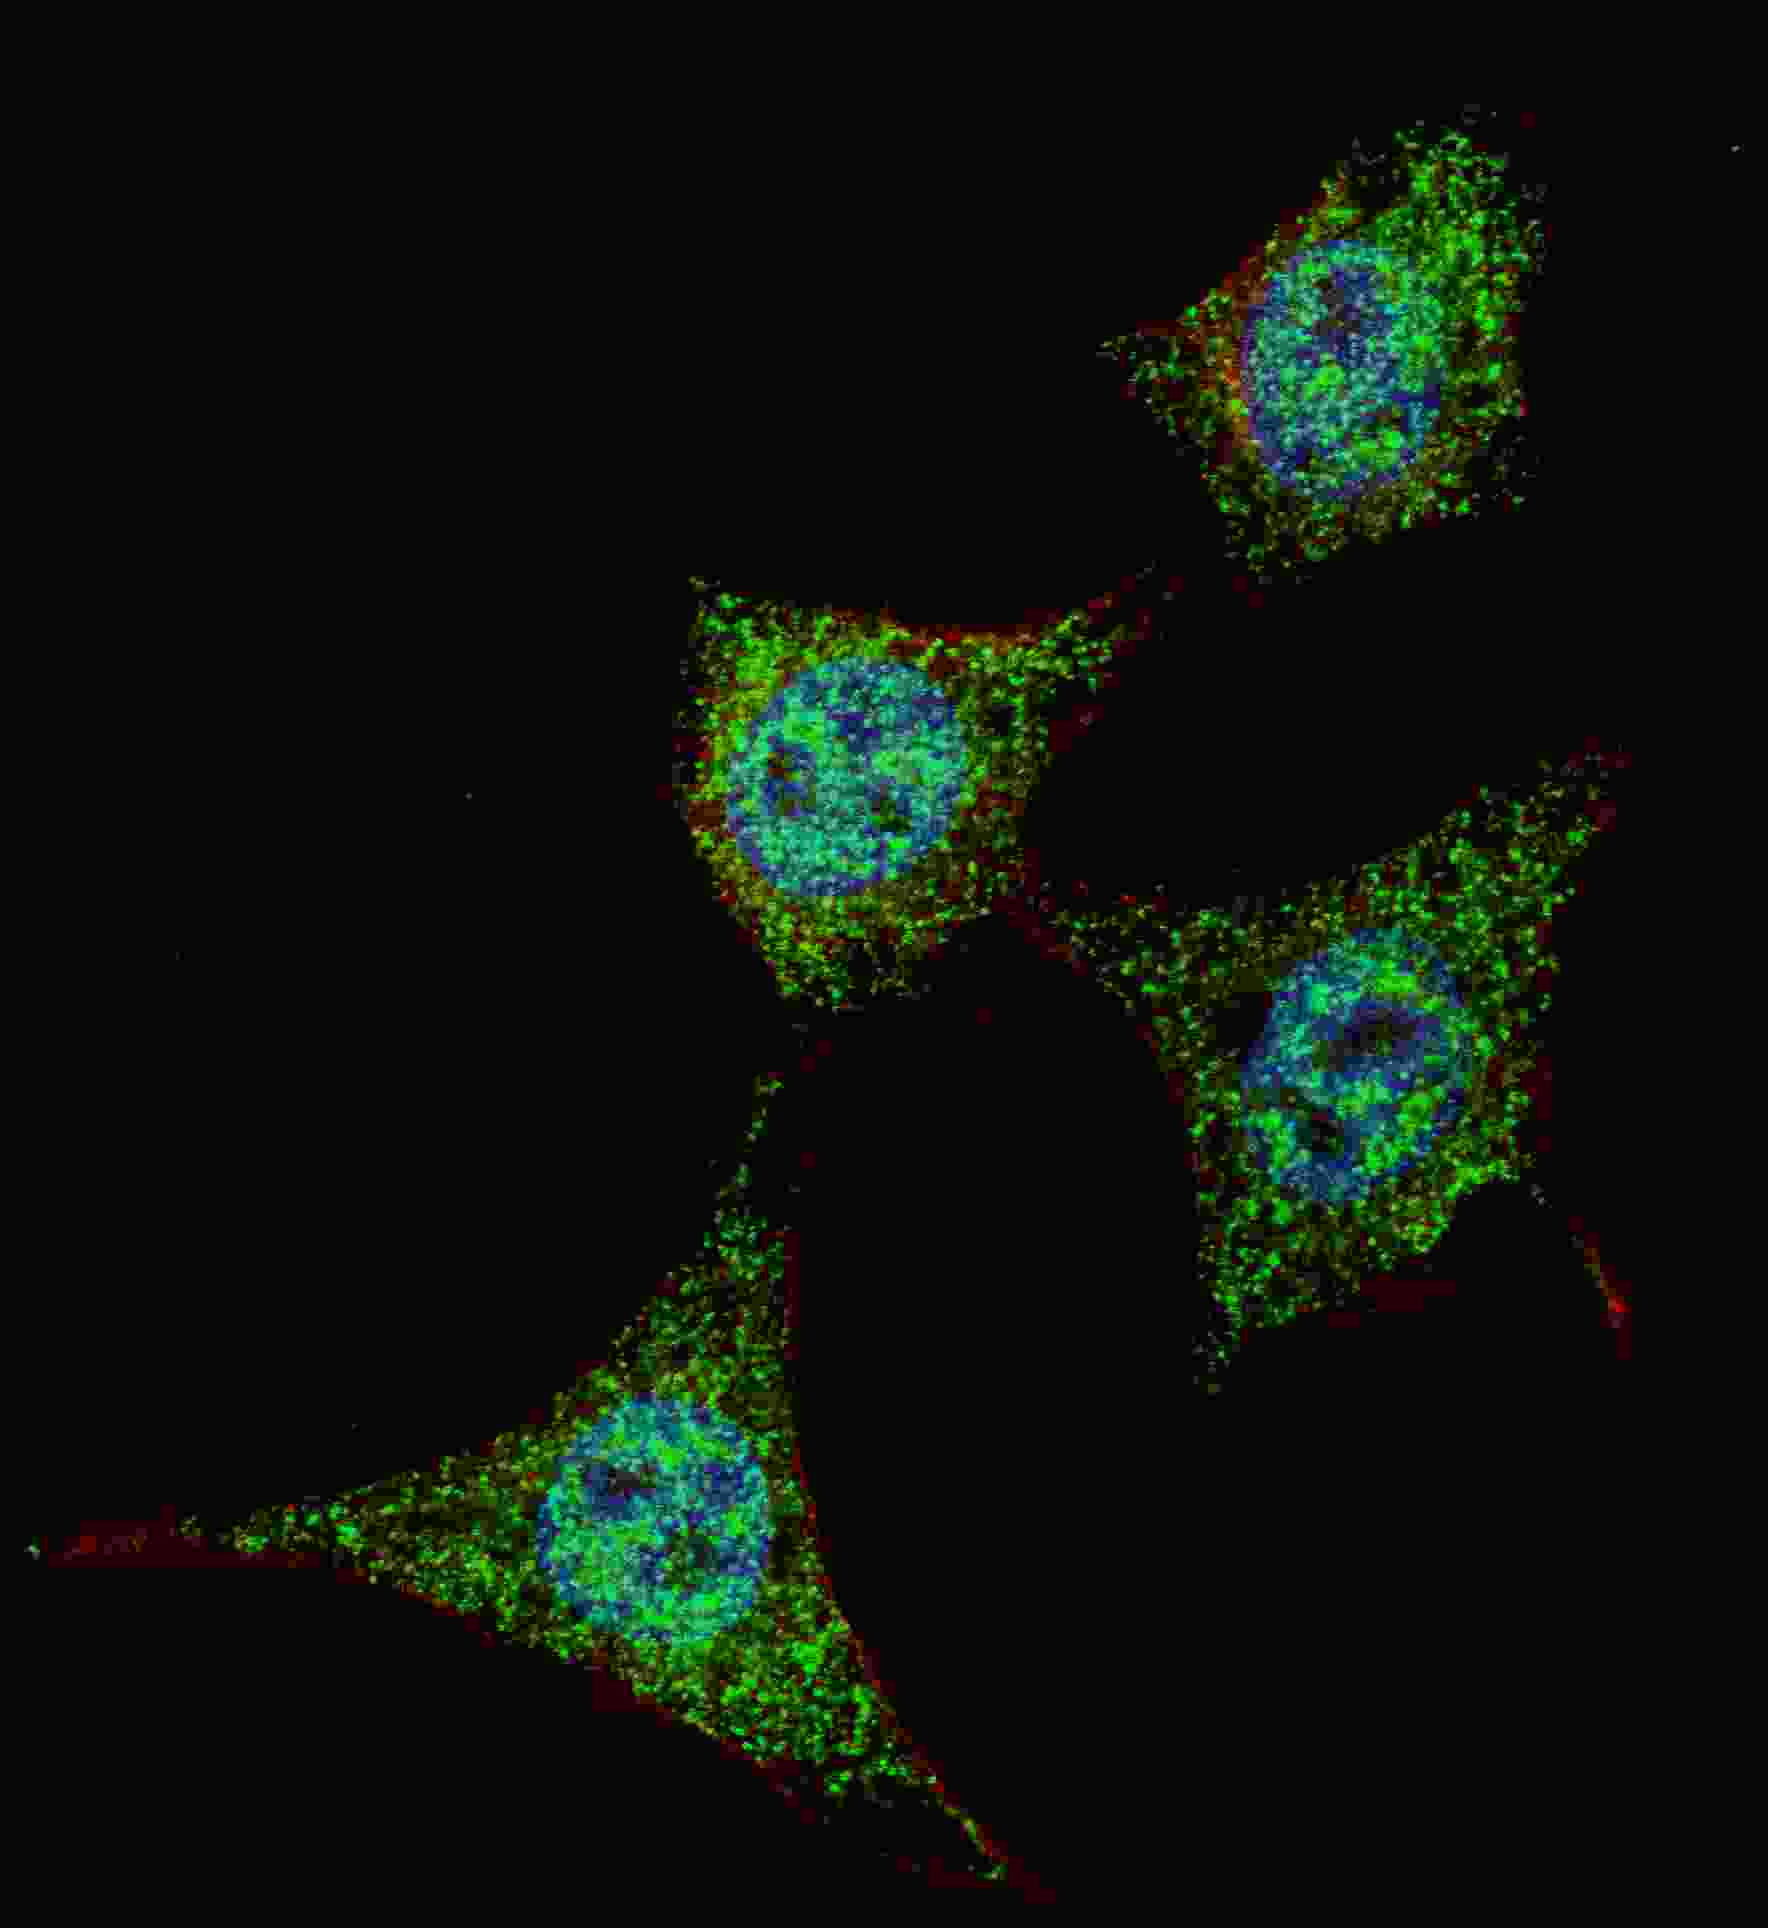 Phospho - Bad - S99 antibody (OAAB16007) in Hela cells using Immunofluorescence